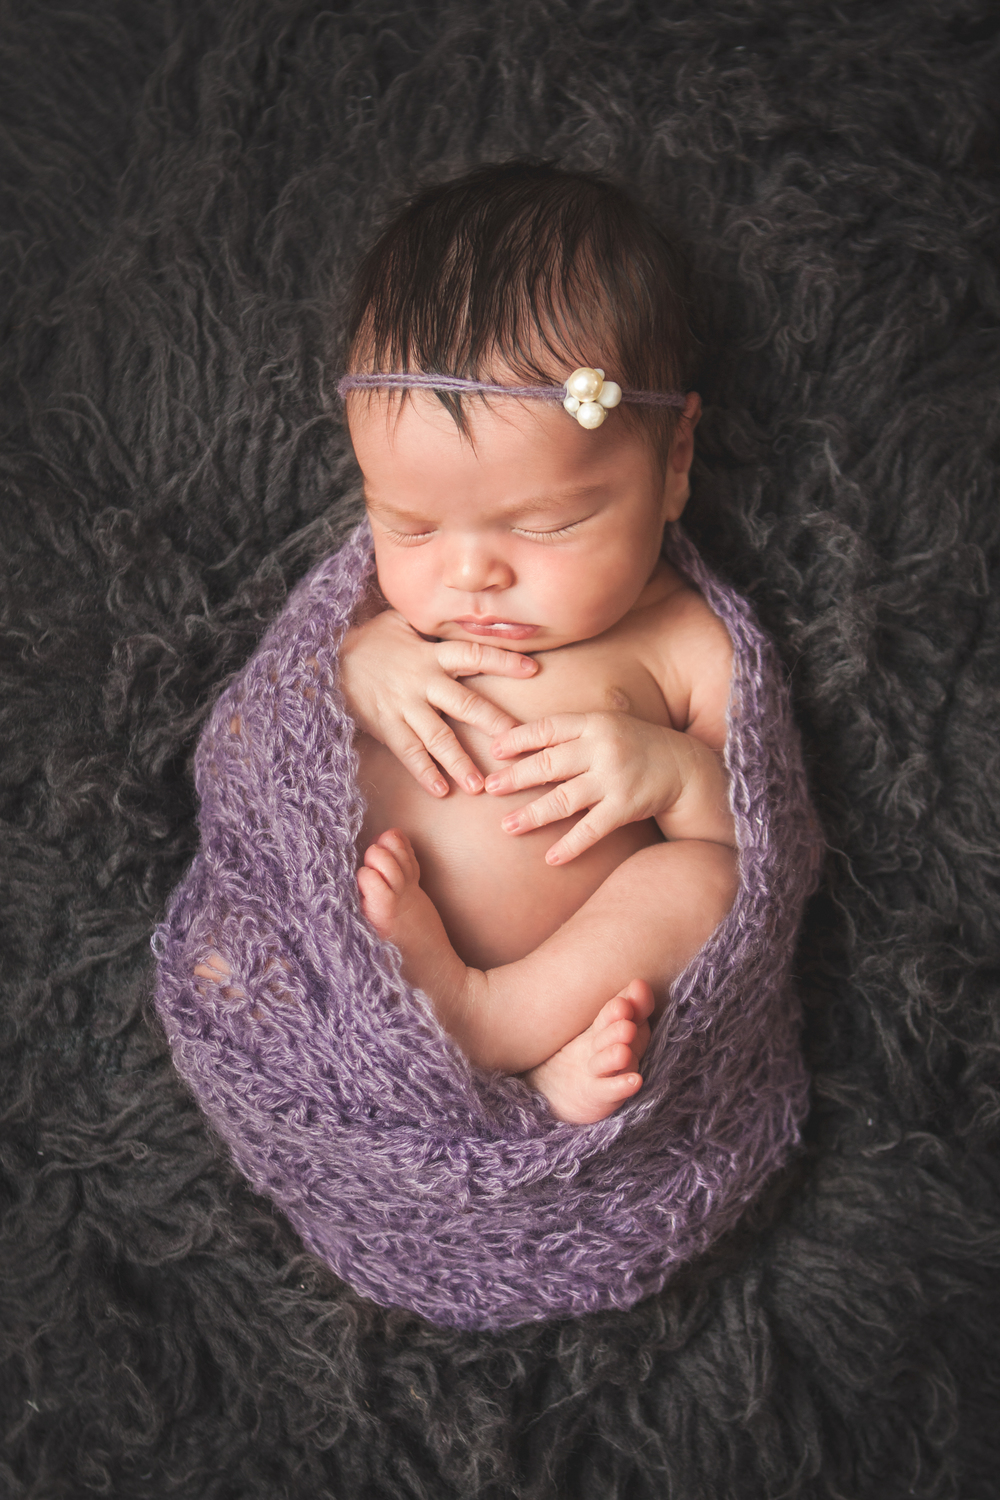 Newborn baby girl wrapped in purple knit with pearl headband tieback on grey rug, Westchester County, NY Newborn Photographer Amanda Noelle Photography.